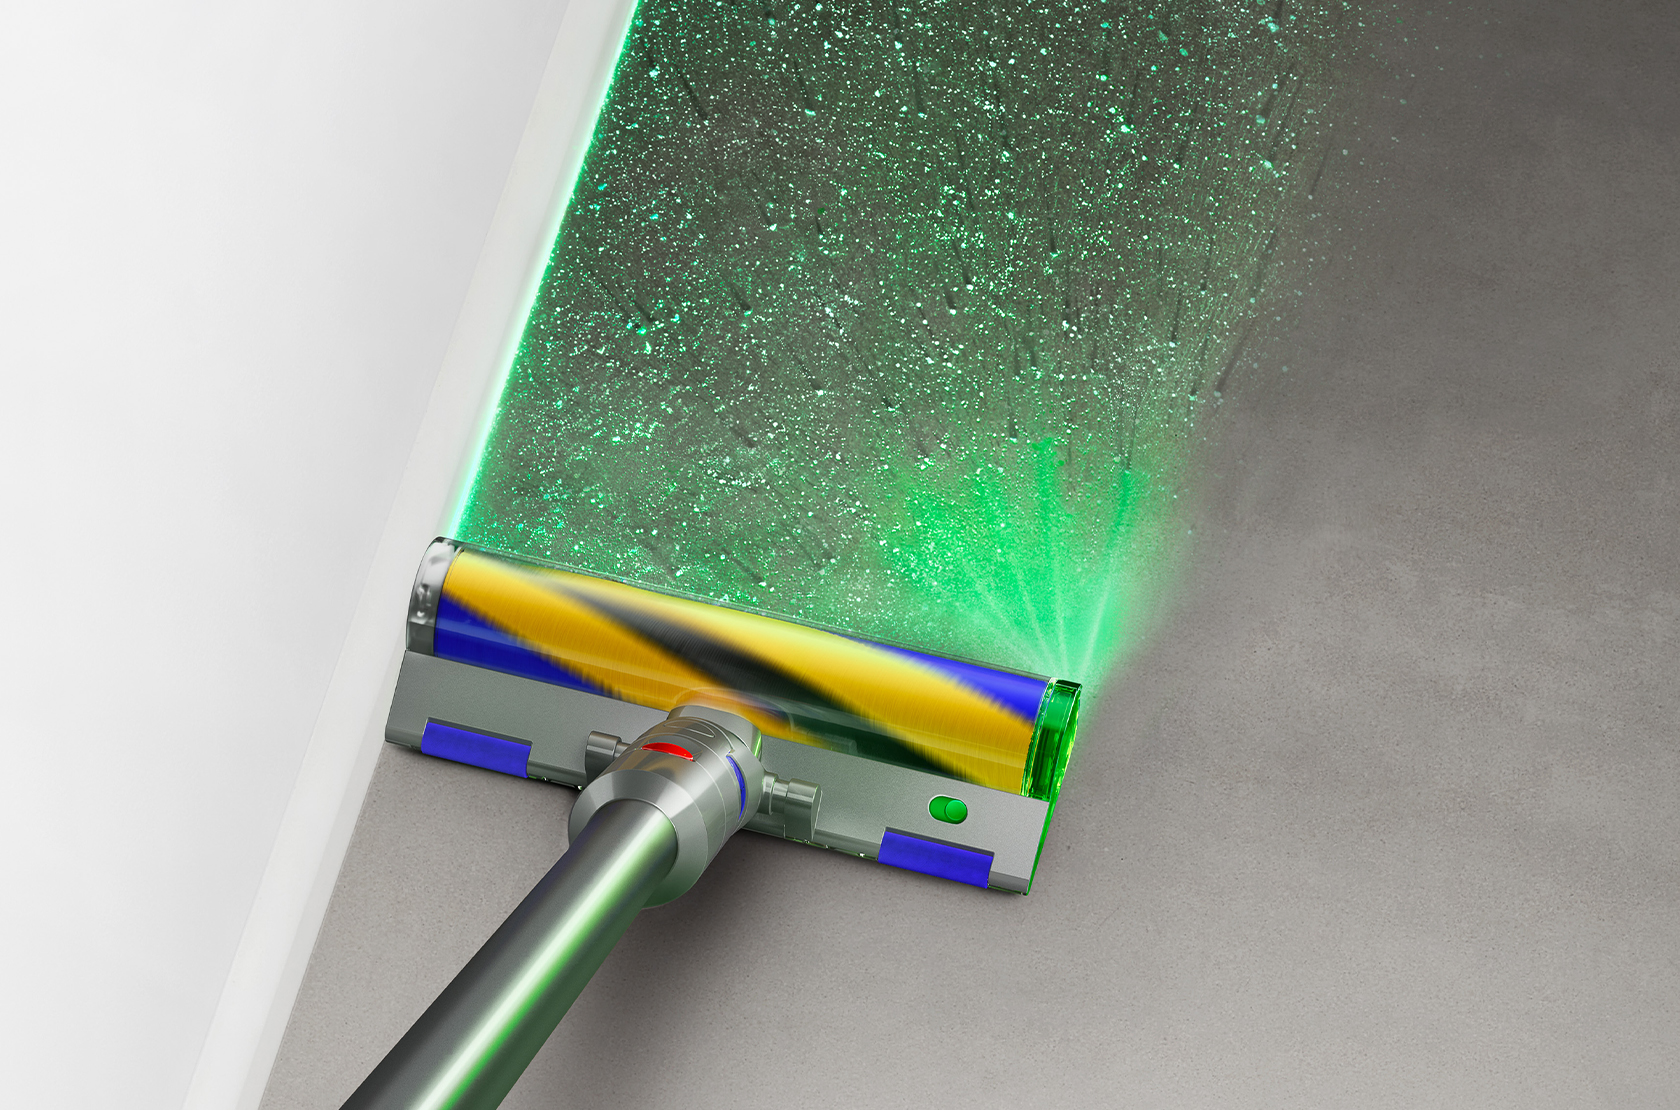 THIS NEW DYSON VACUUM CAN REVEAL HIDDEN DUST WITH ITS GREEN LASER FEATURE